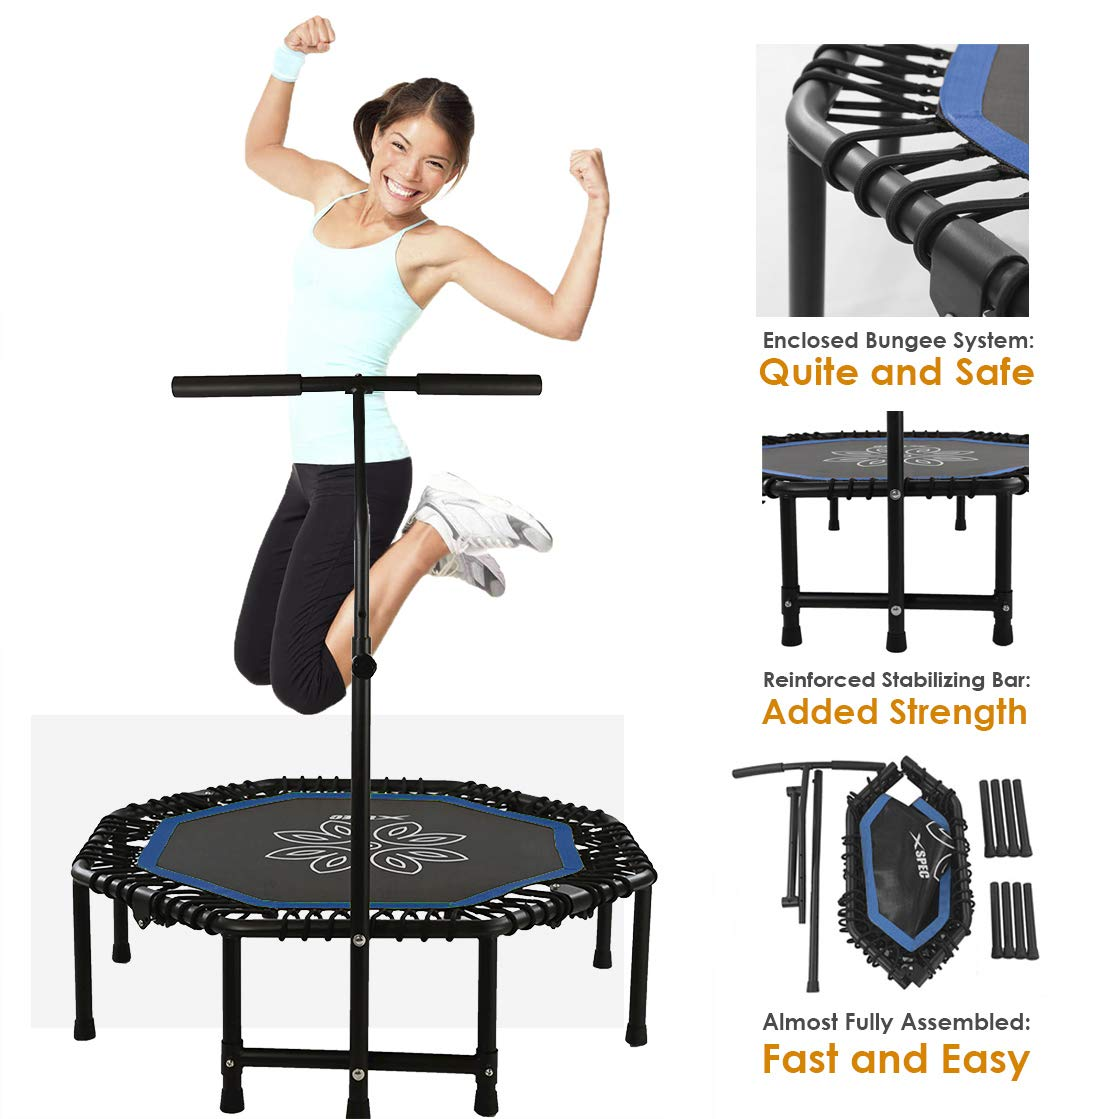 Xspec 44'' Silent Fitness Mini Trampoline with Adjustable Handrail Bar, Blue & Black - Indoor Rebounder for Adults - Best Cardio Jump Fitness Low Impact Workout Trainer, Covered Bungee Rope System